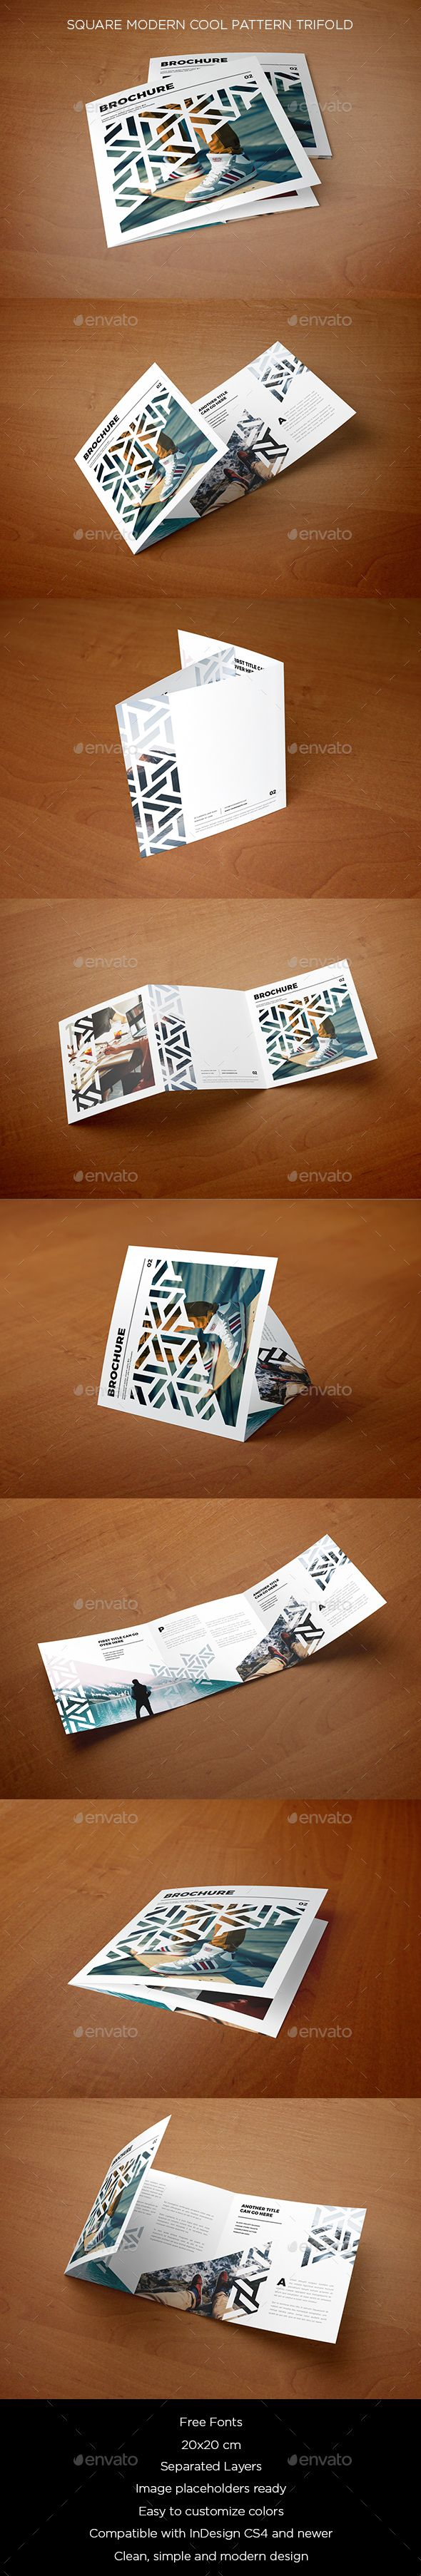 Square Modern Cool Pattern Trifold Brochure Template InDesign INDD. Download here: https://graphicriver.net/item/square-modern-cool-pattern-trifold/17544748?ref=ksioks